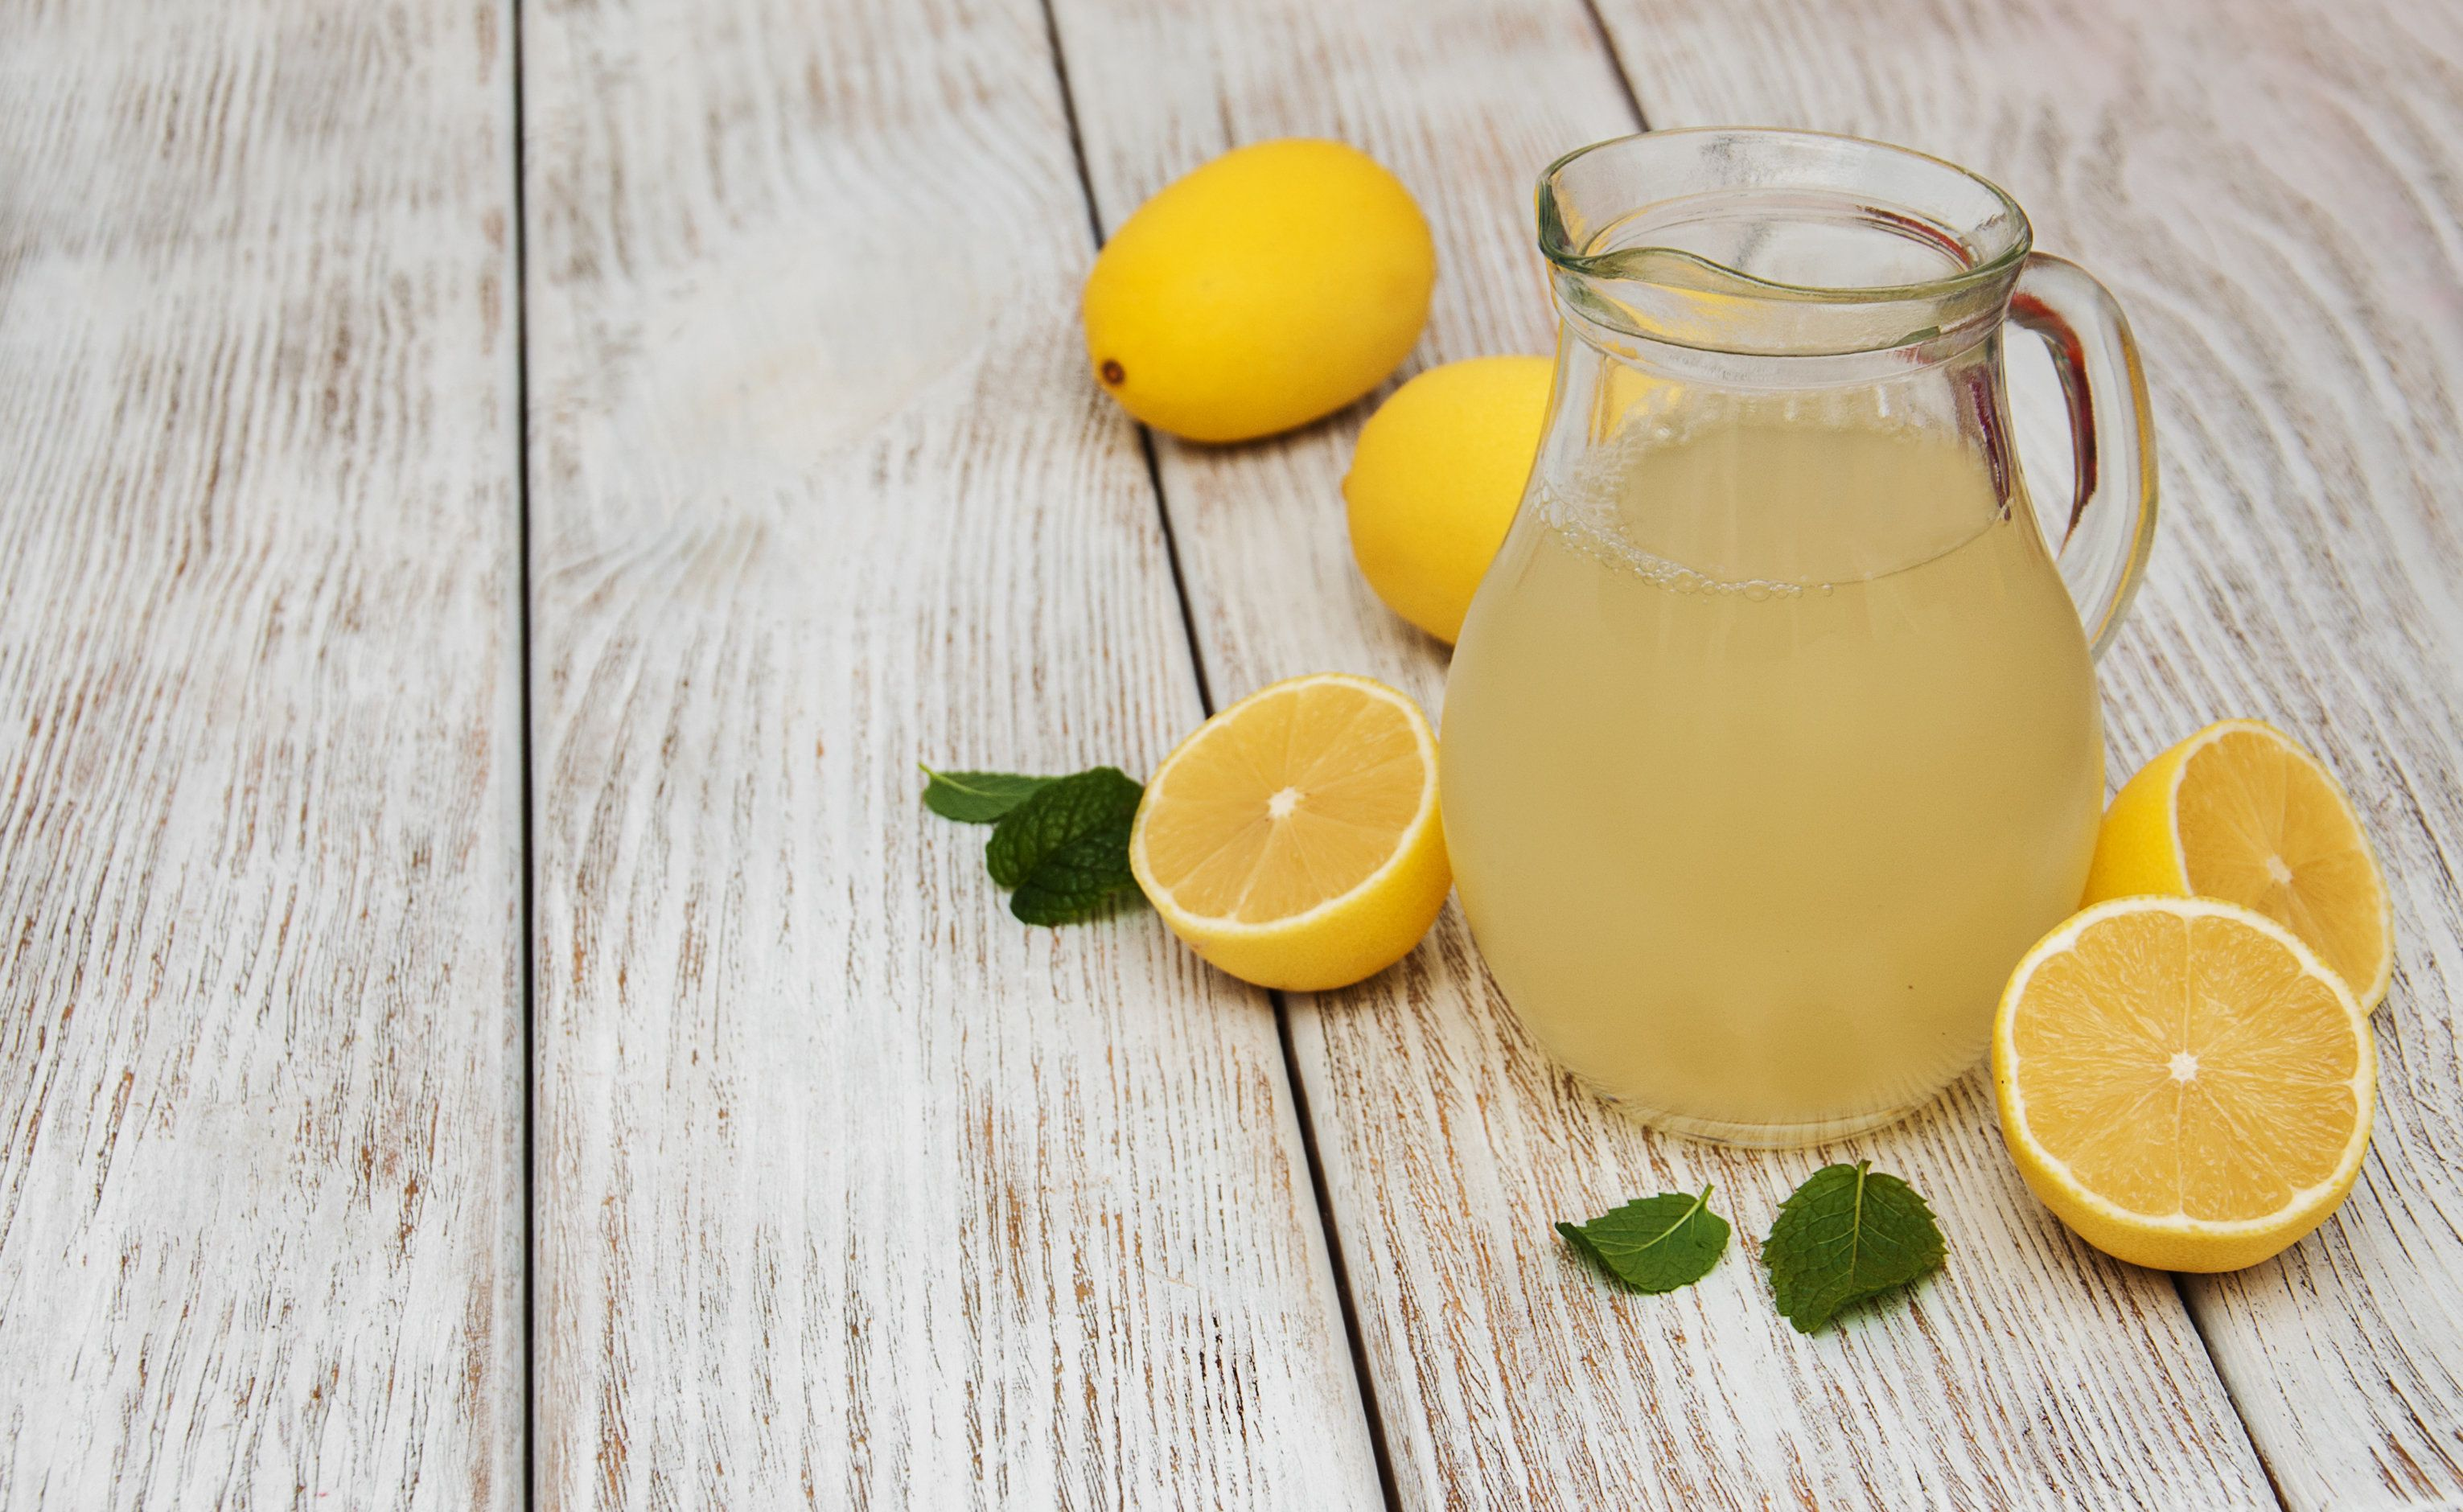 Jar of lemon juice on a old wooden table